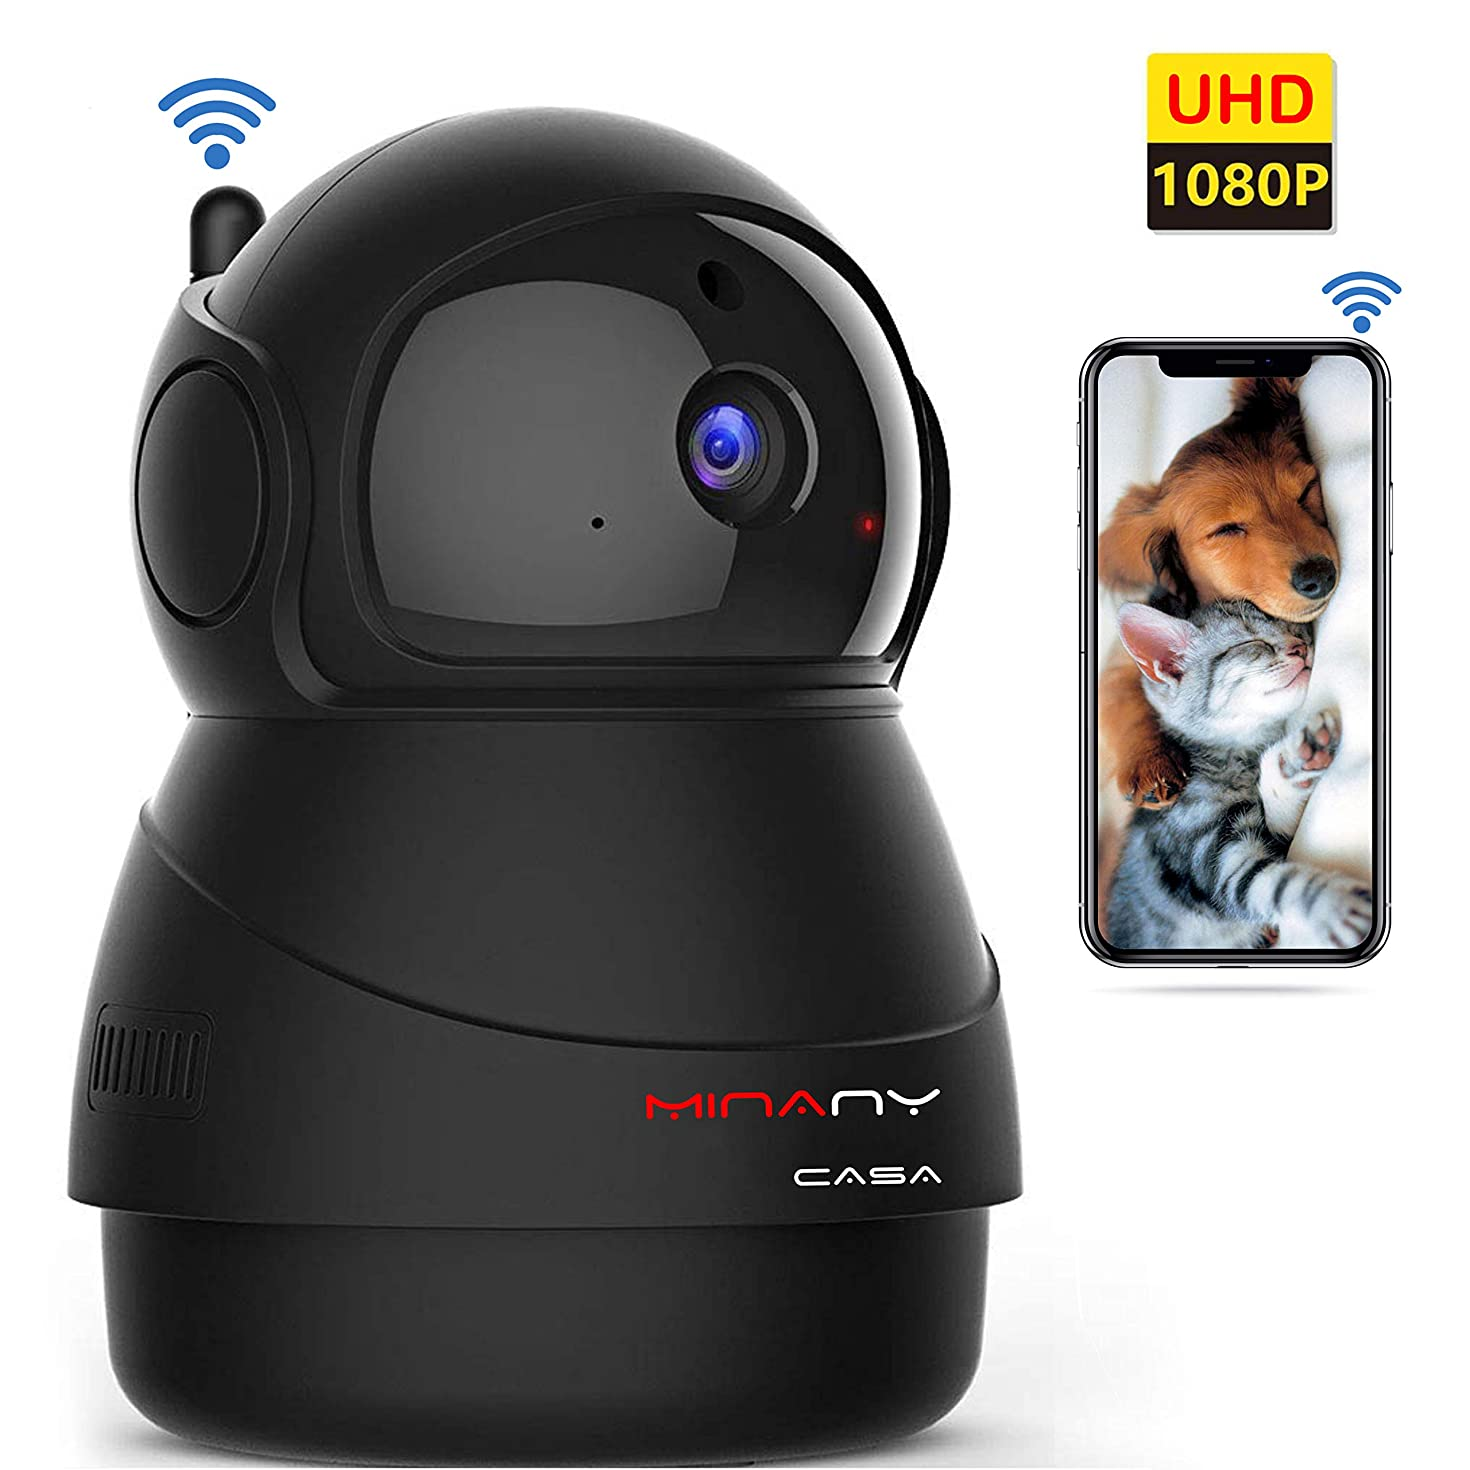 MINANY CASA Pet Camera HD1080P Wireless 360 Degree Panorama View,WiFi Indoor Cameras Night Vision Two-Way Audio Motion Detection Digital Zoom Glass Lens Technology for Pet, Baby, Nanny, Home Security